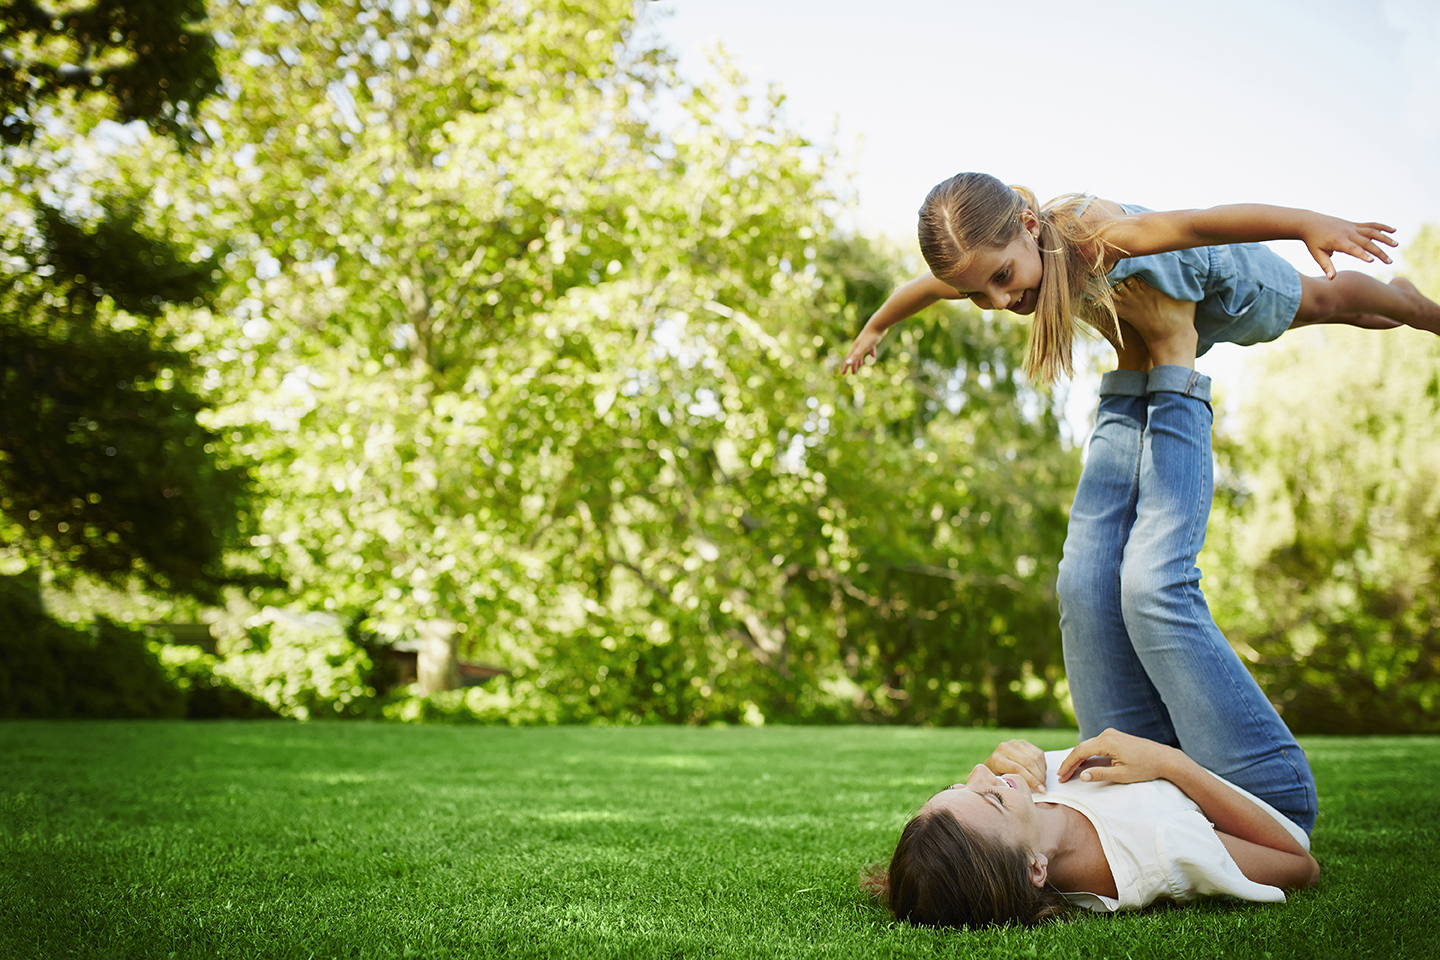 Mother lifting daughter with legs in park